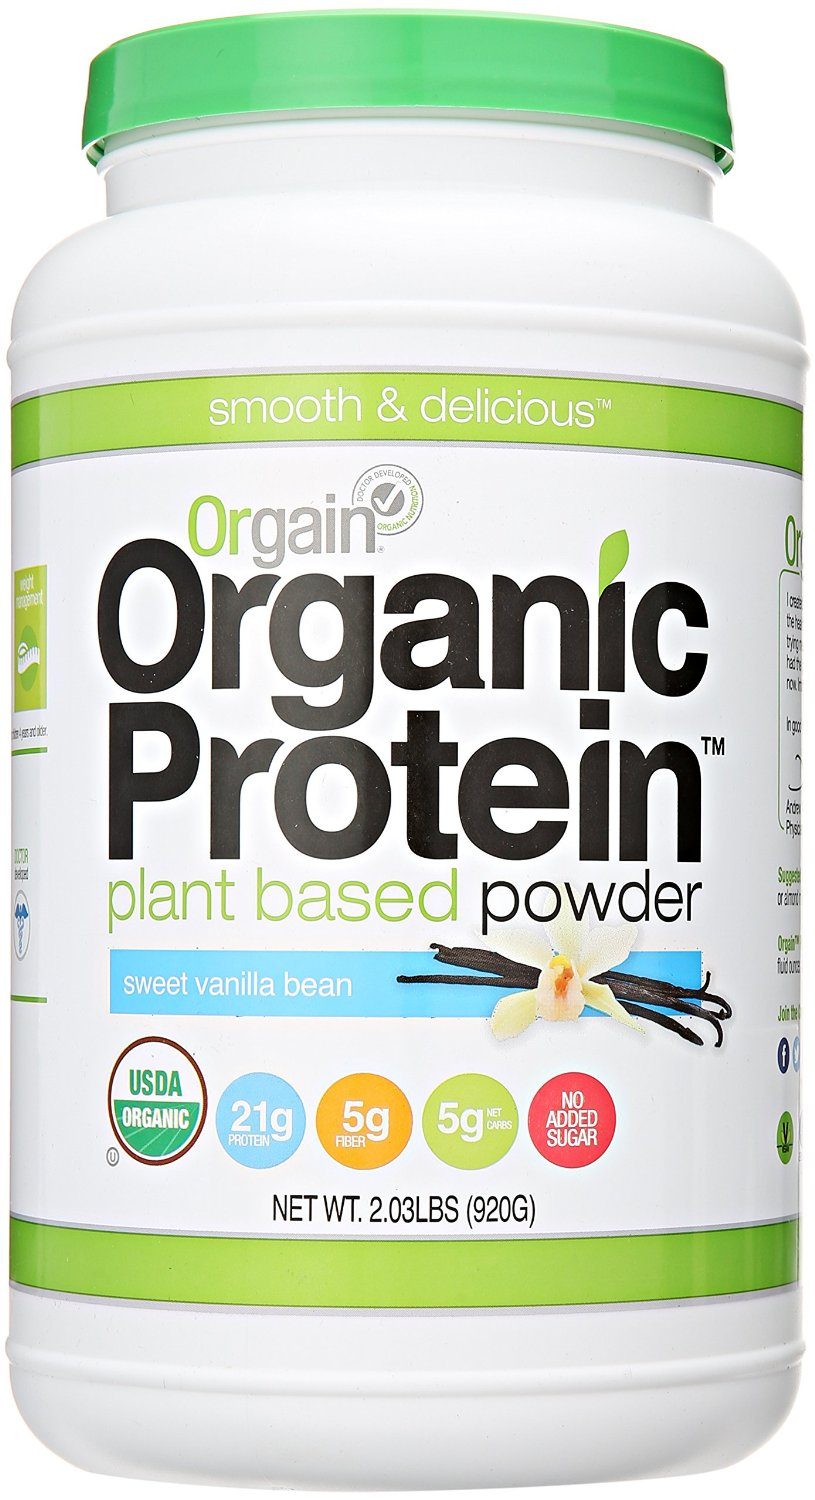 The Vegan Protein Powder Review